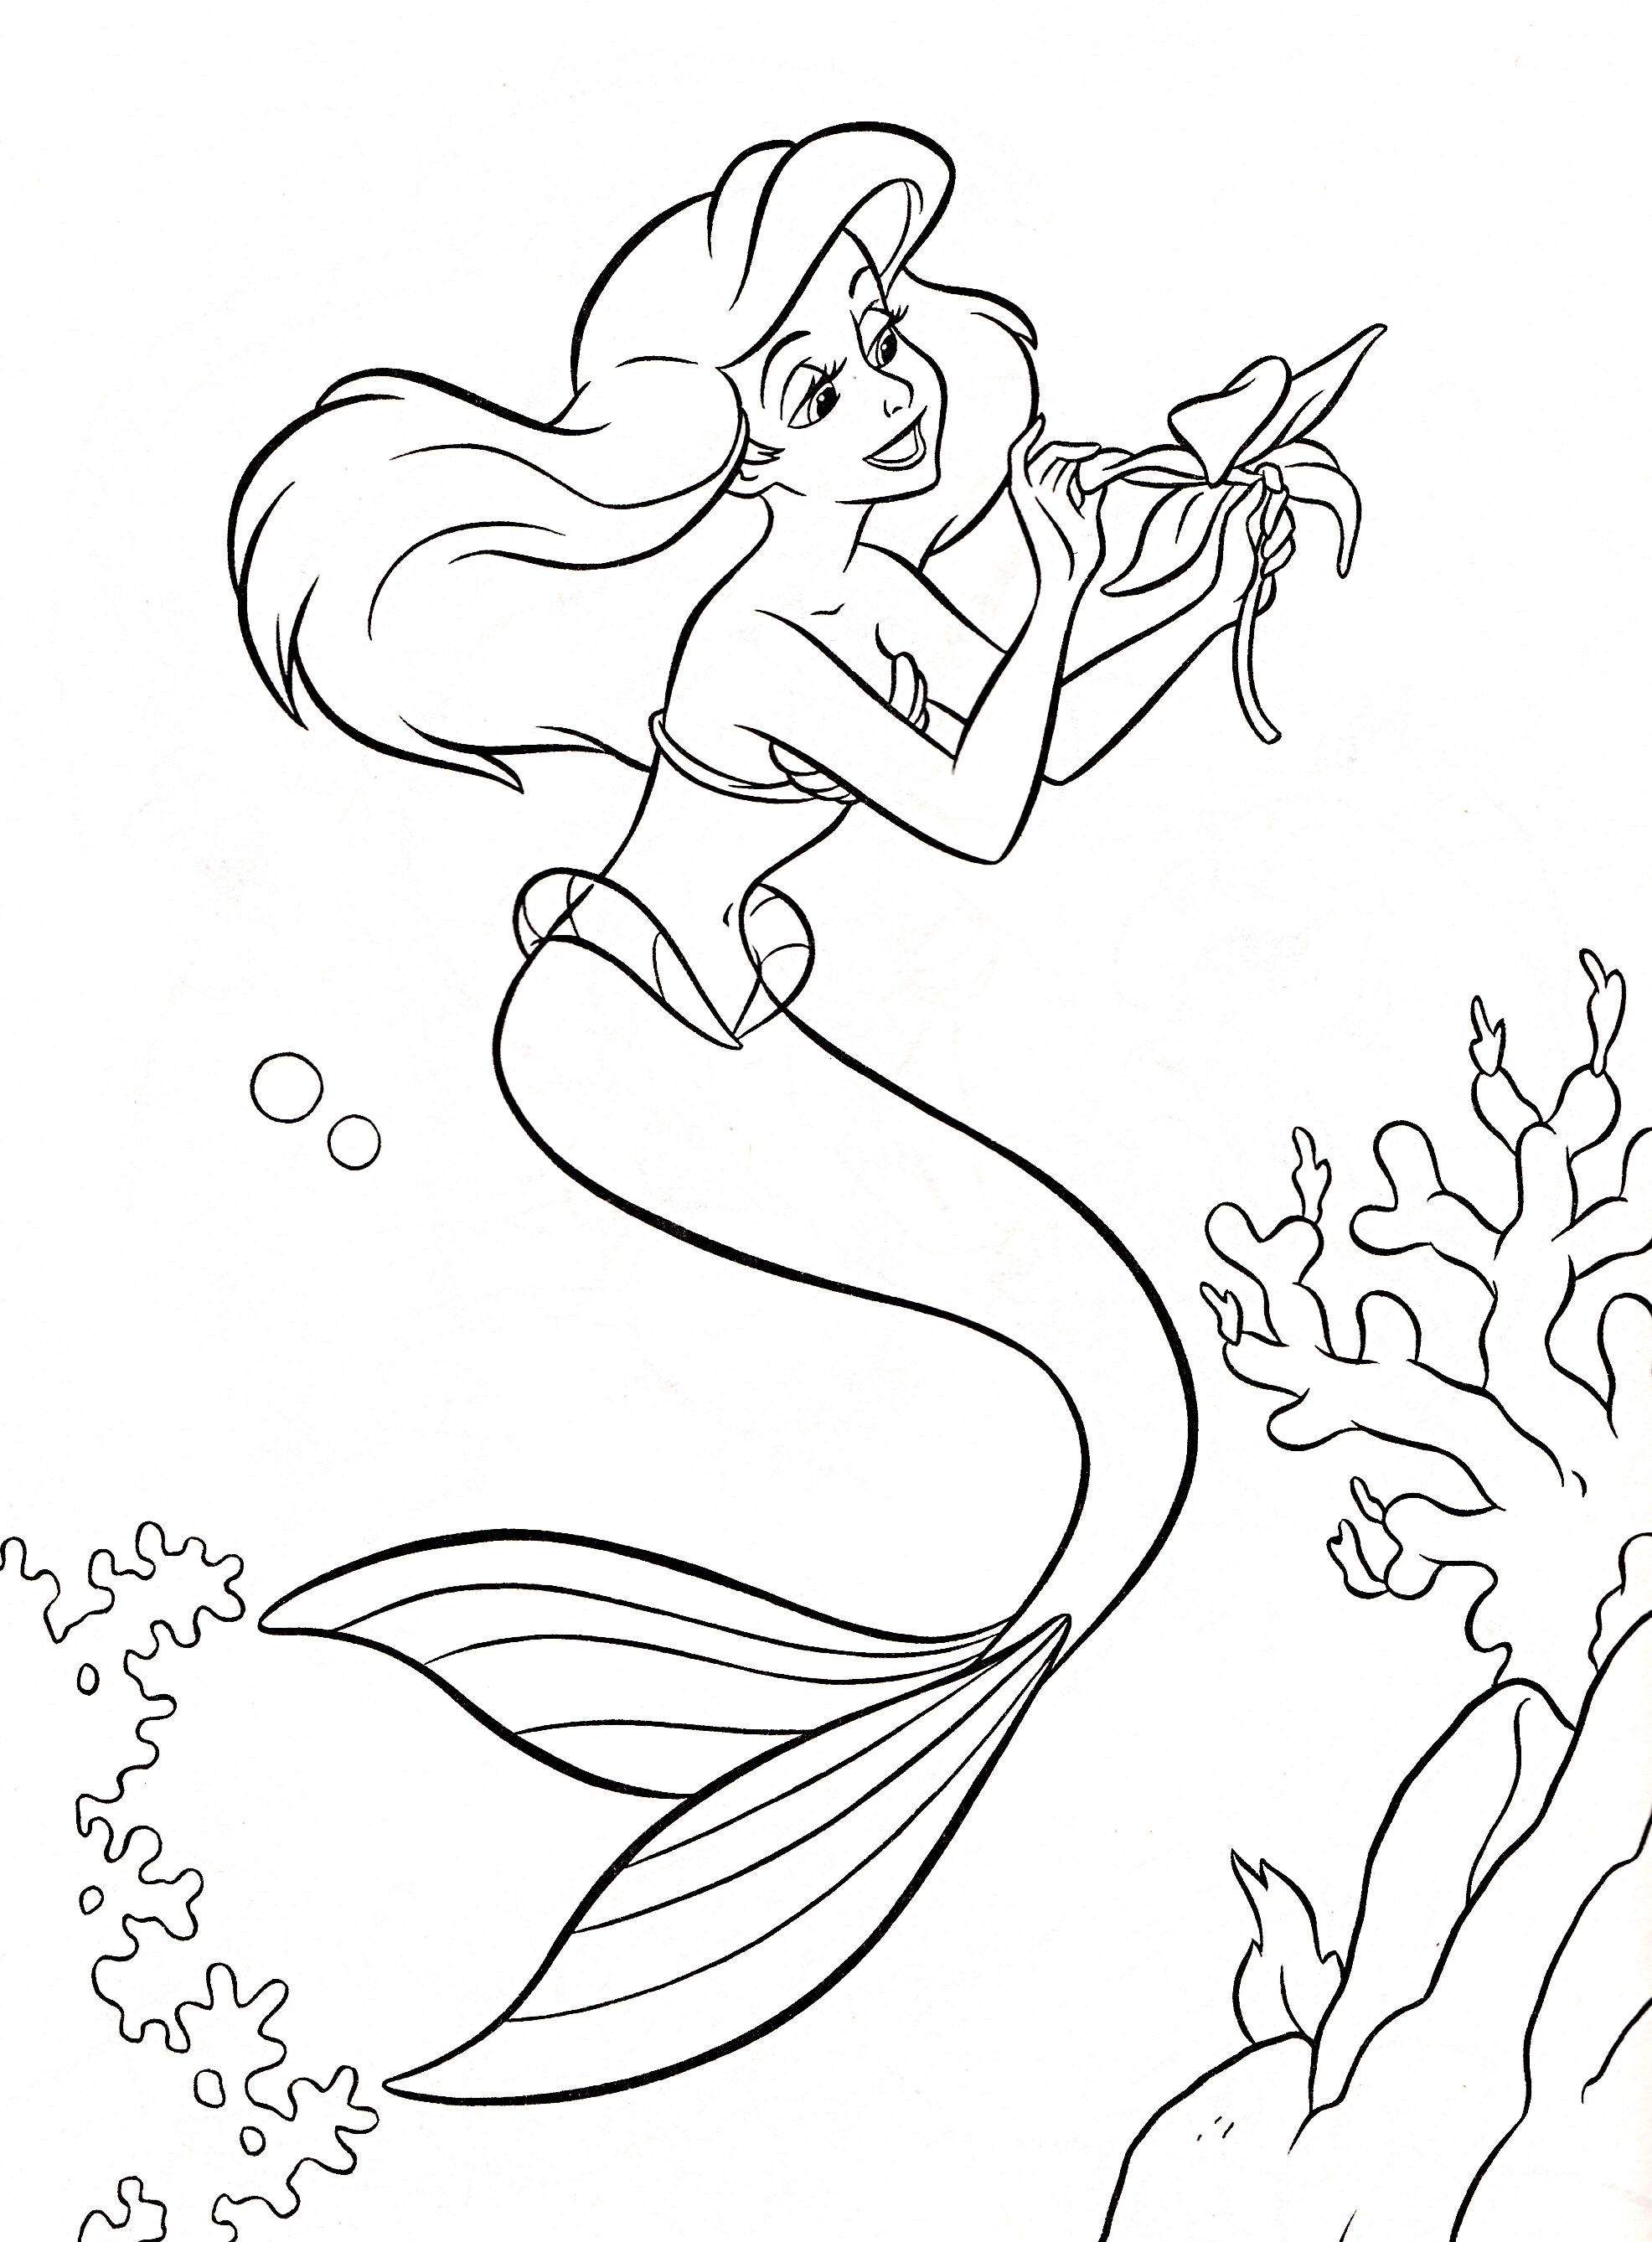 Princess coloring book pages - Coloring Book Pages Disney